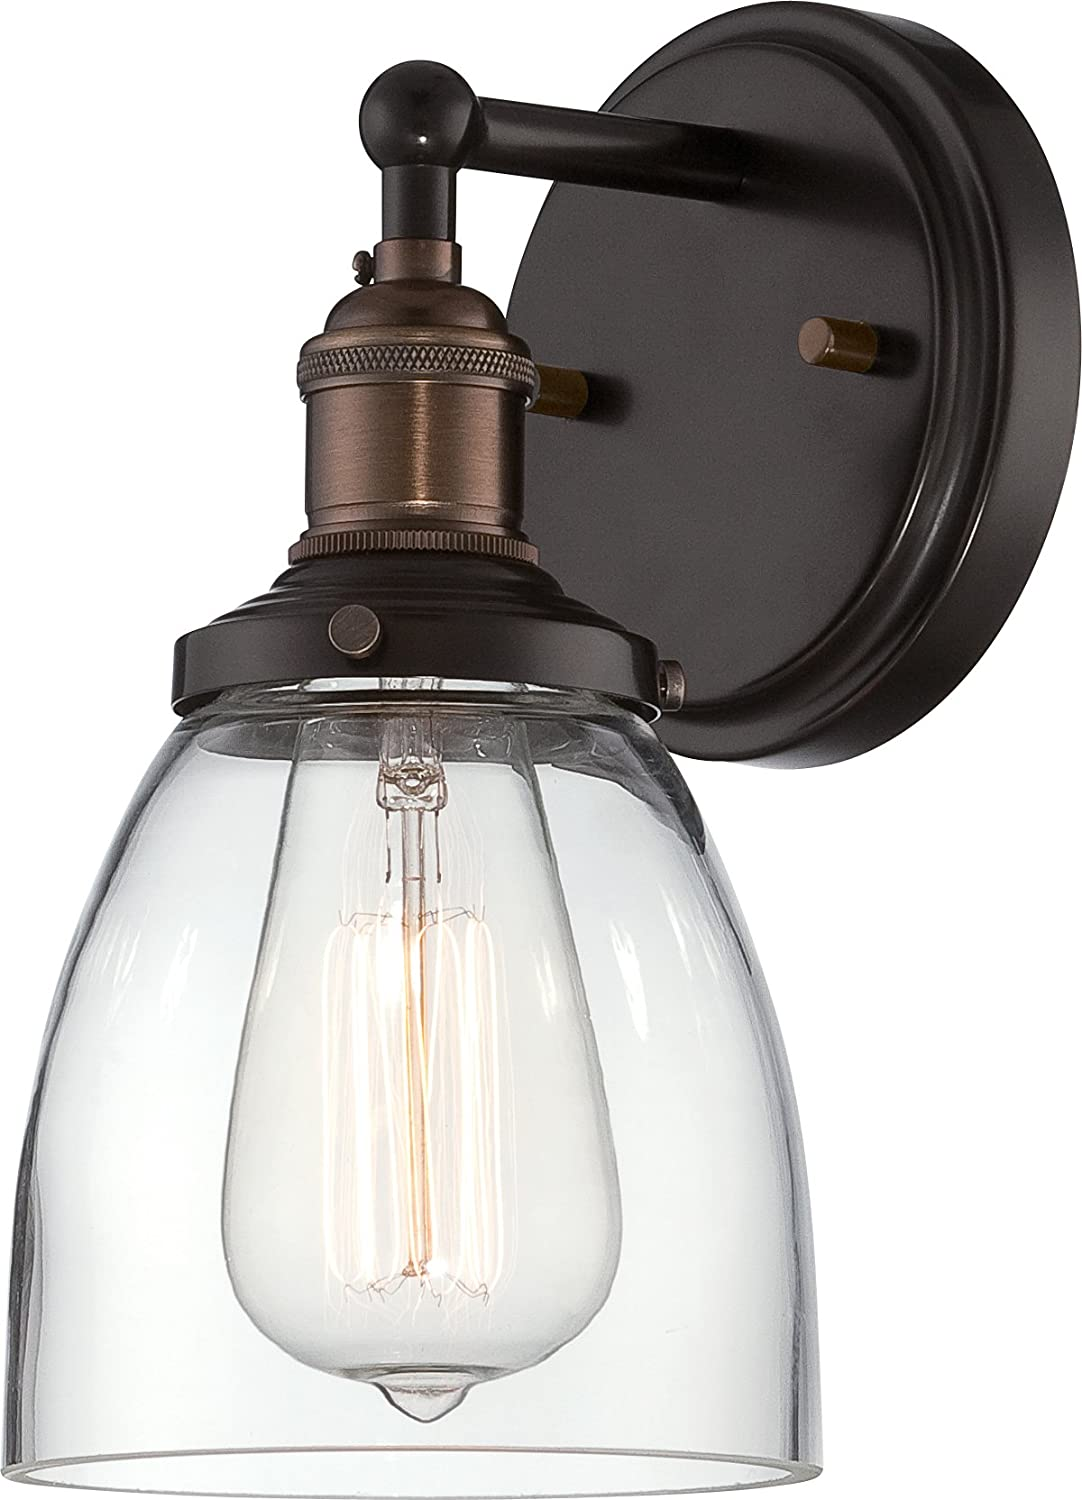 Nuvo Lighting 60 5514 Vintage Incandescent One Light Wall Sconce Cone Clear Glass Rustic Bronze